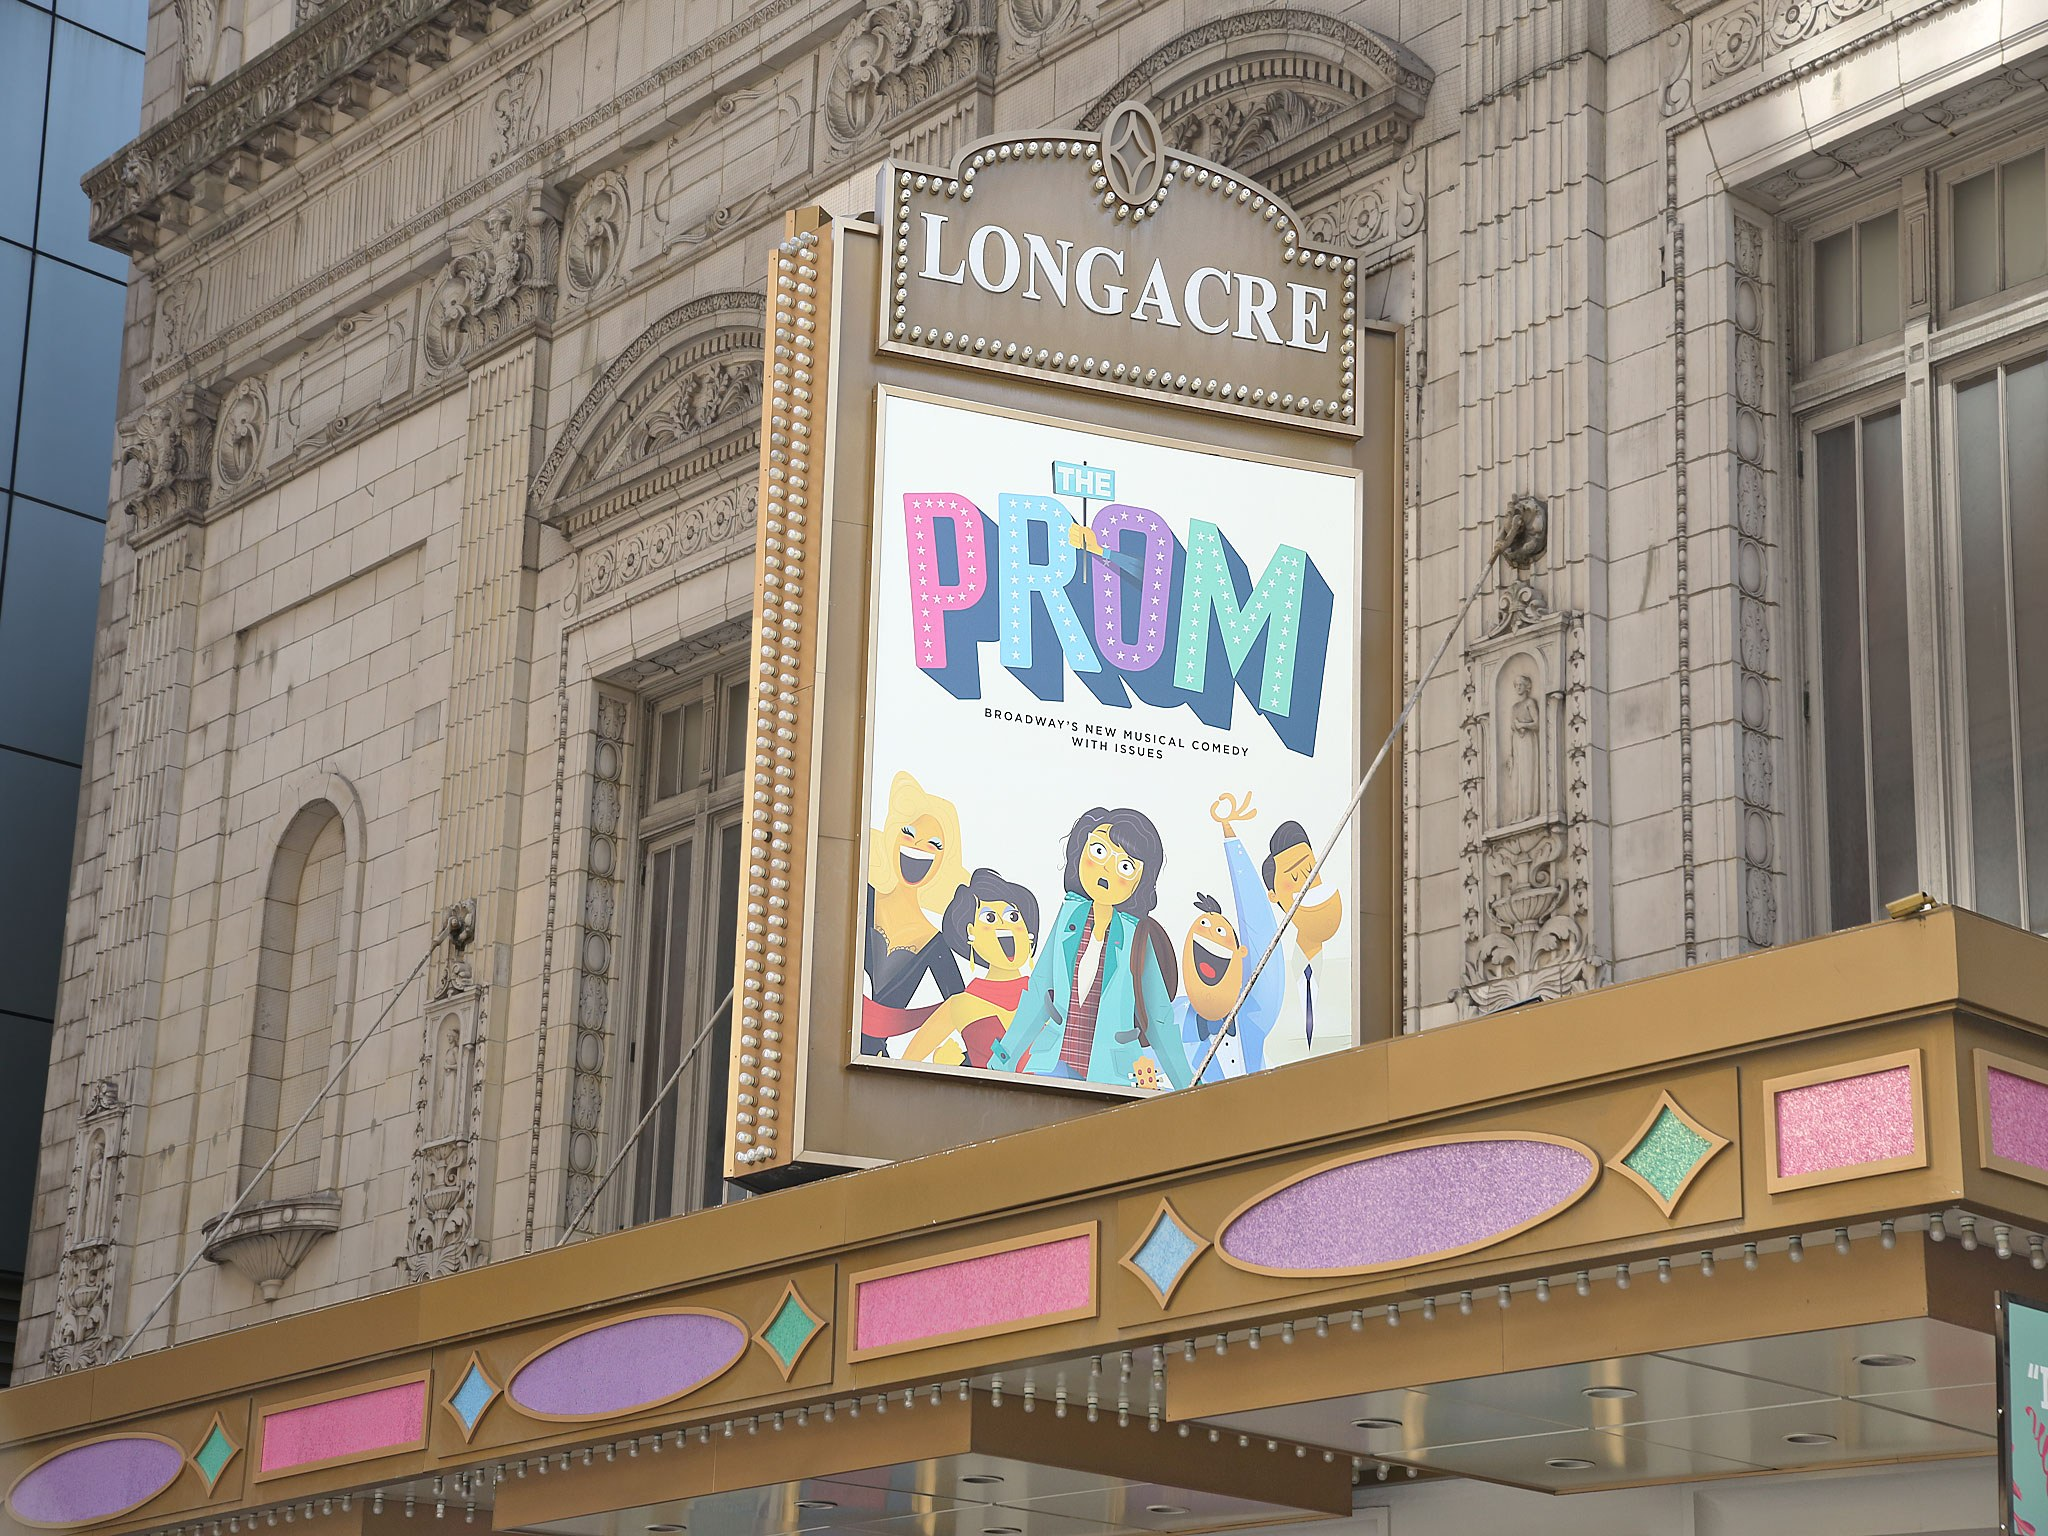 The Prom at the Langacre Theatre